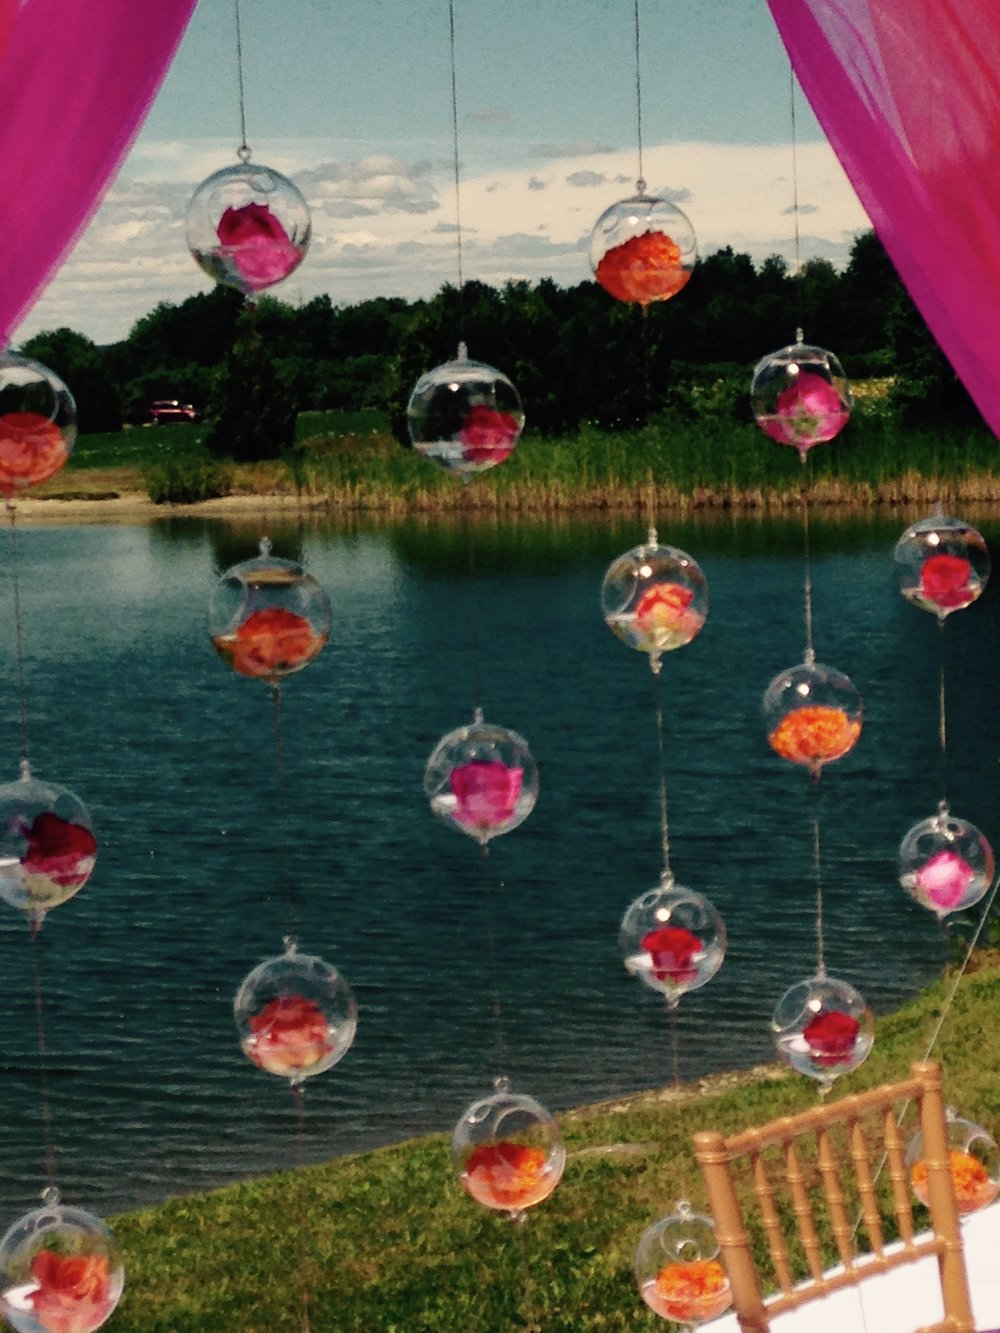 Hanging floral orbs